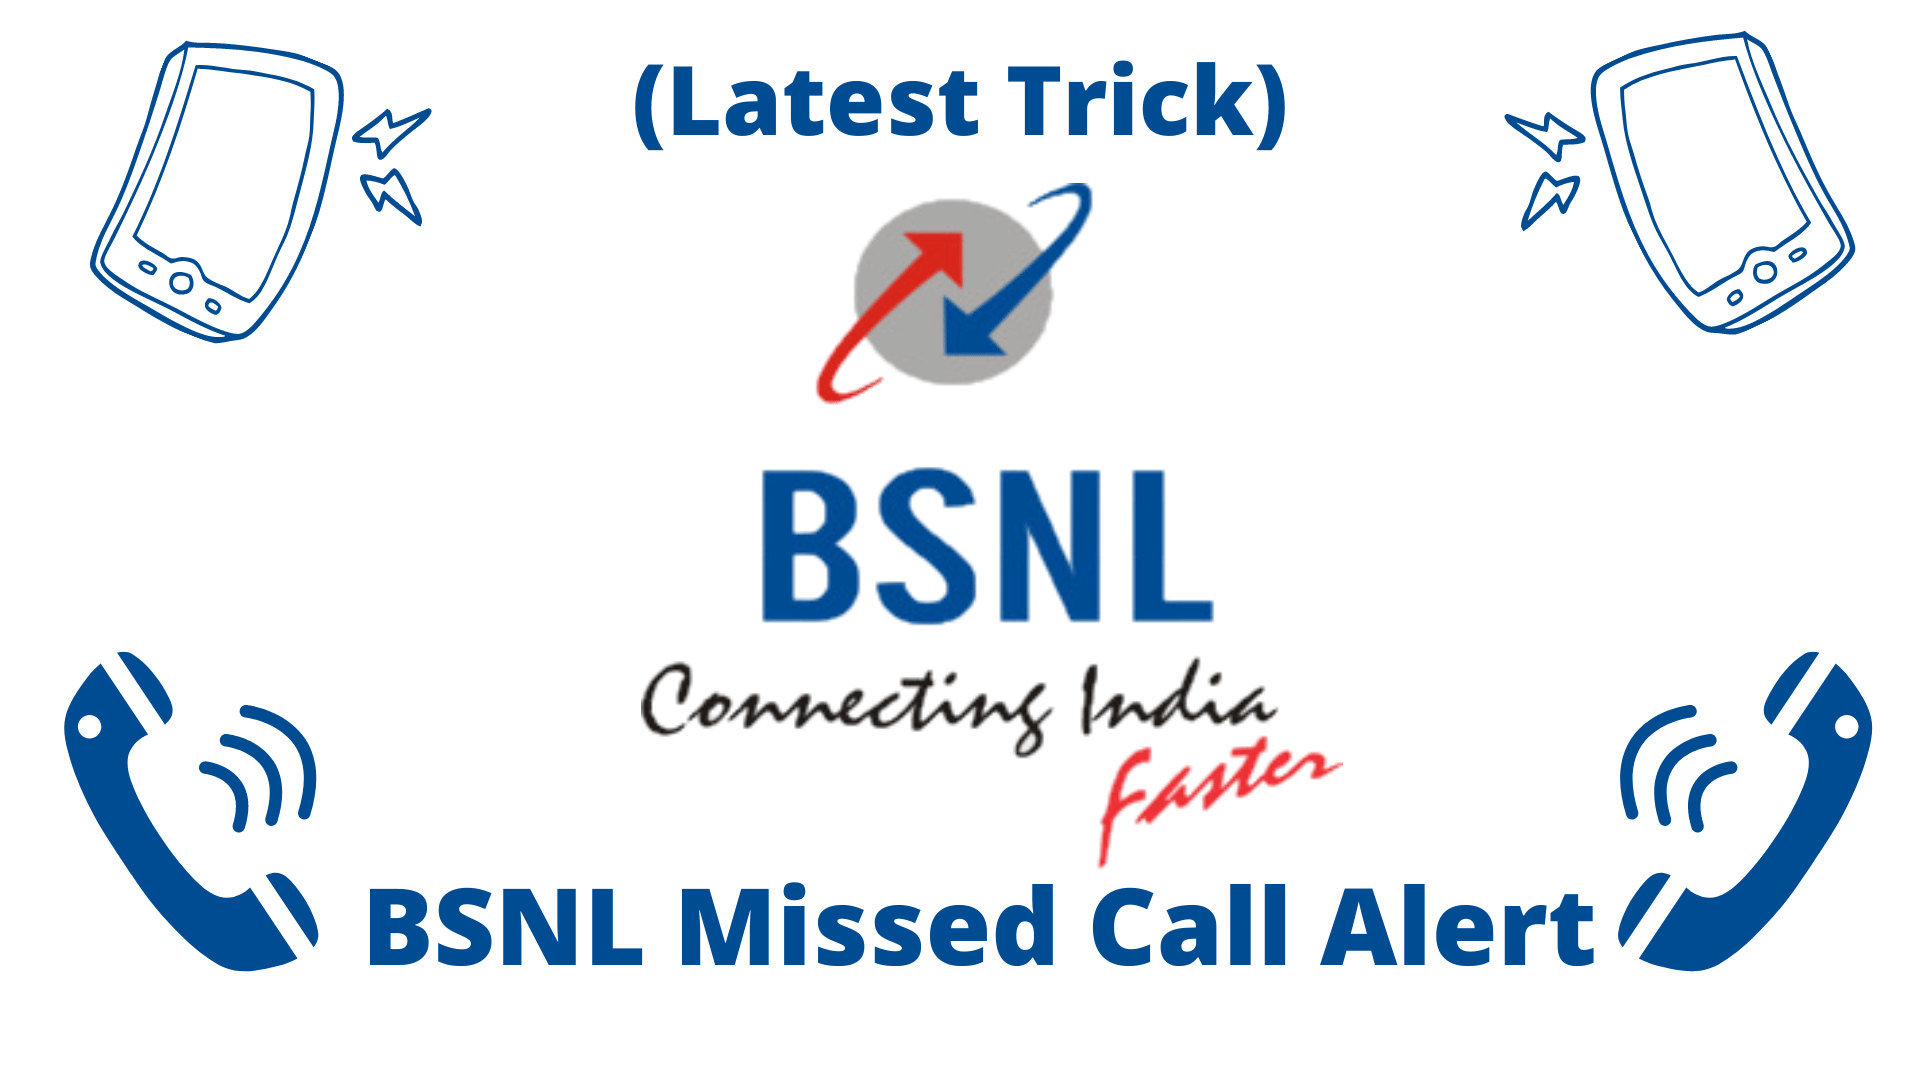 Activate and Deactivate Missed Call Alert Service in BSNL